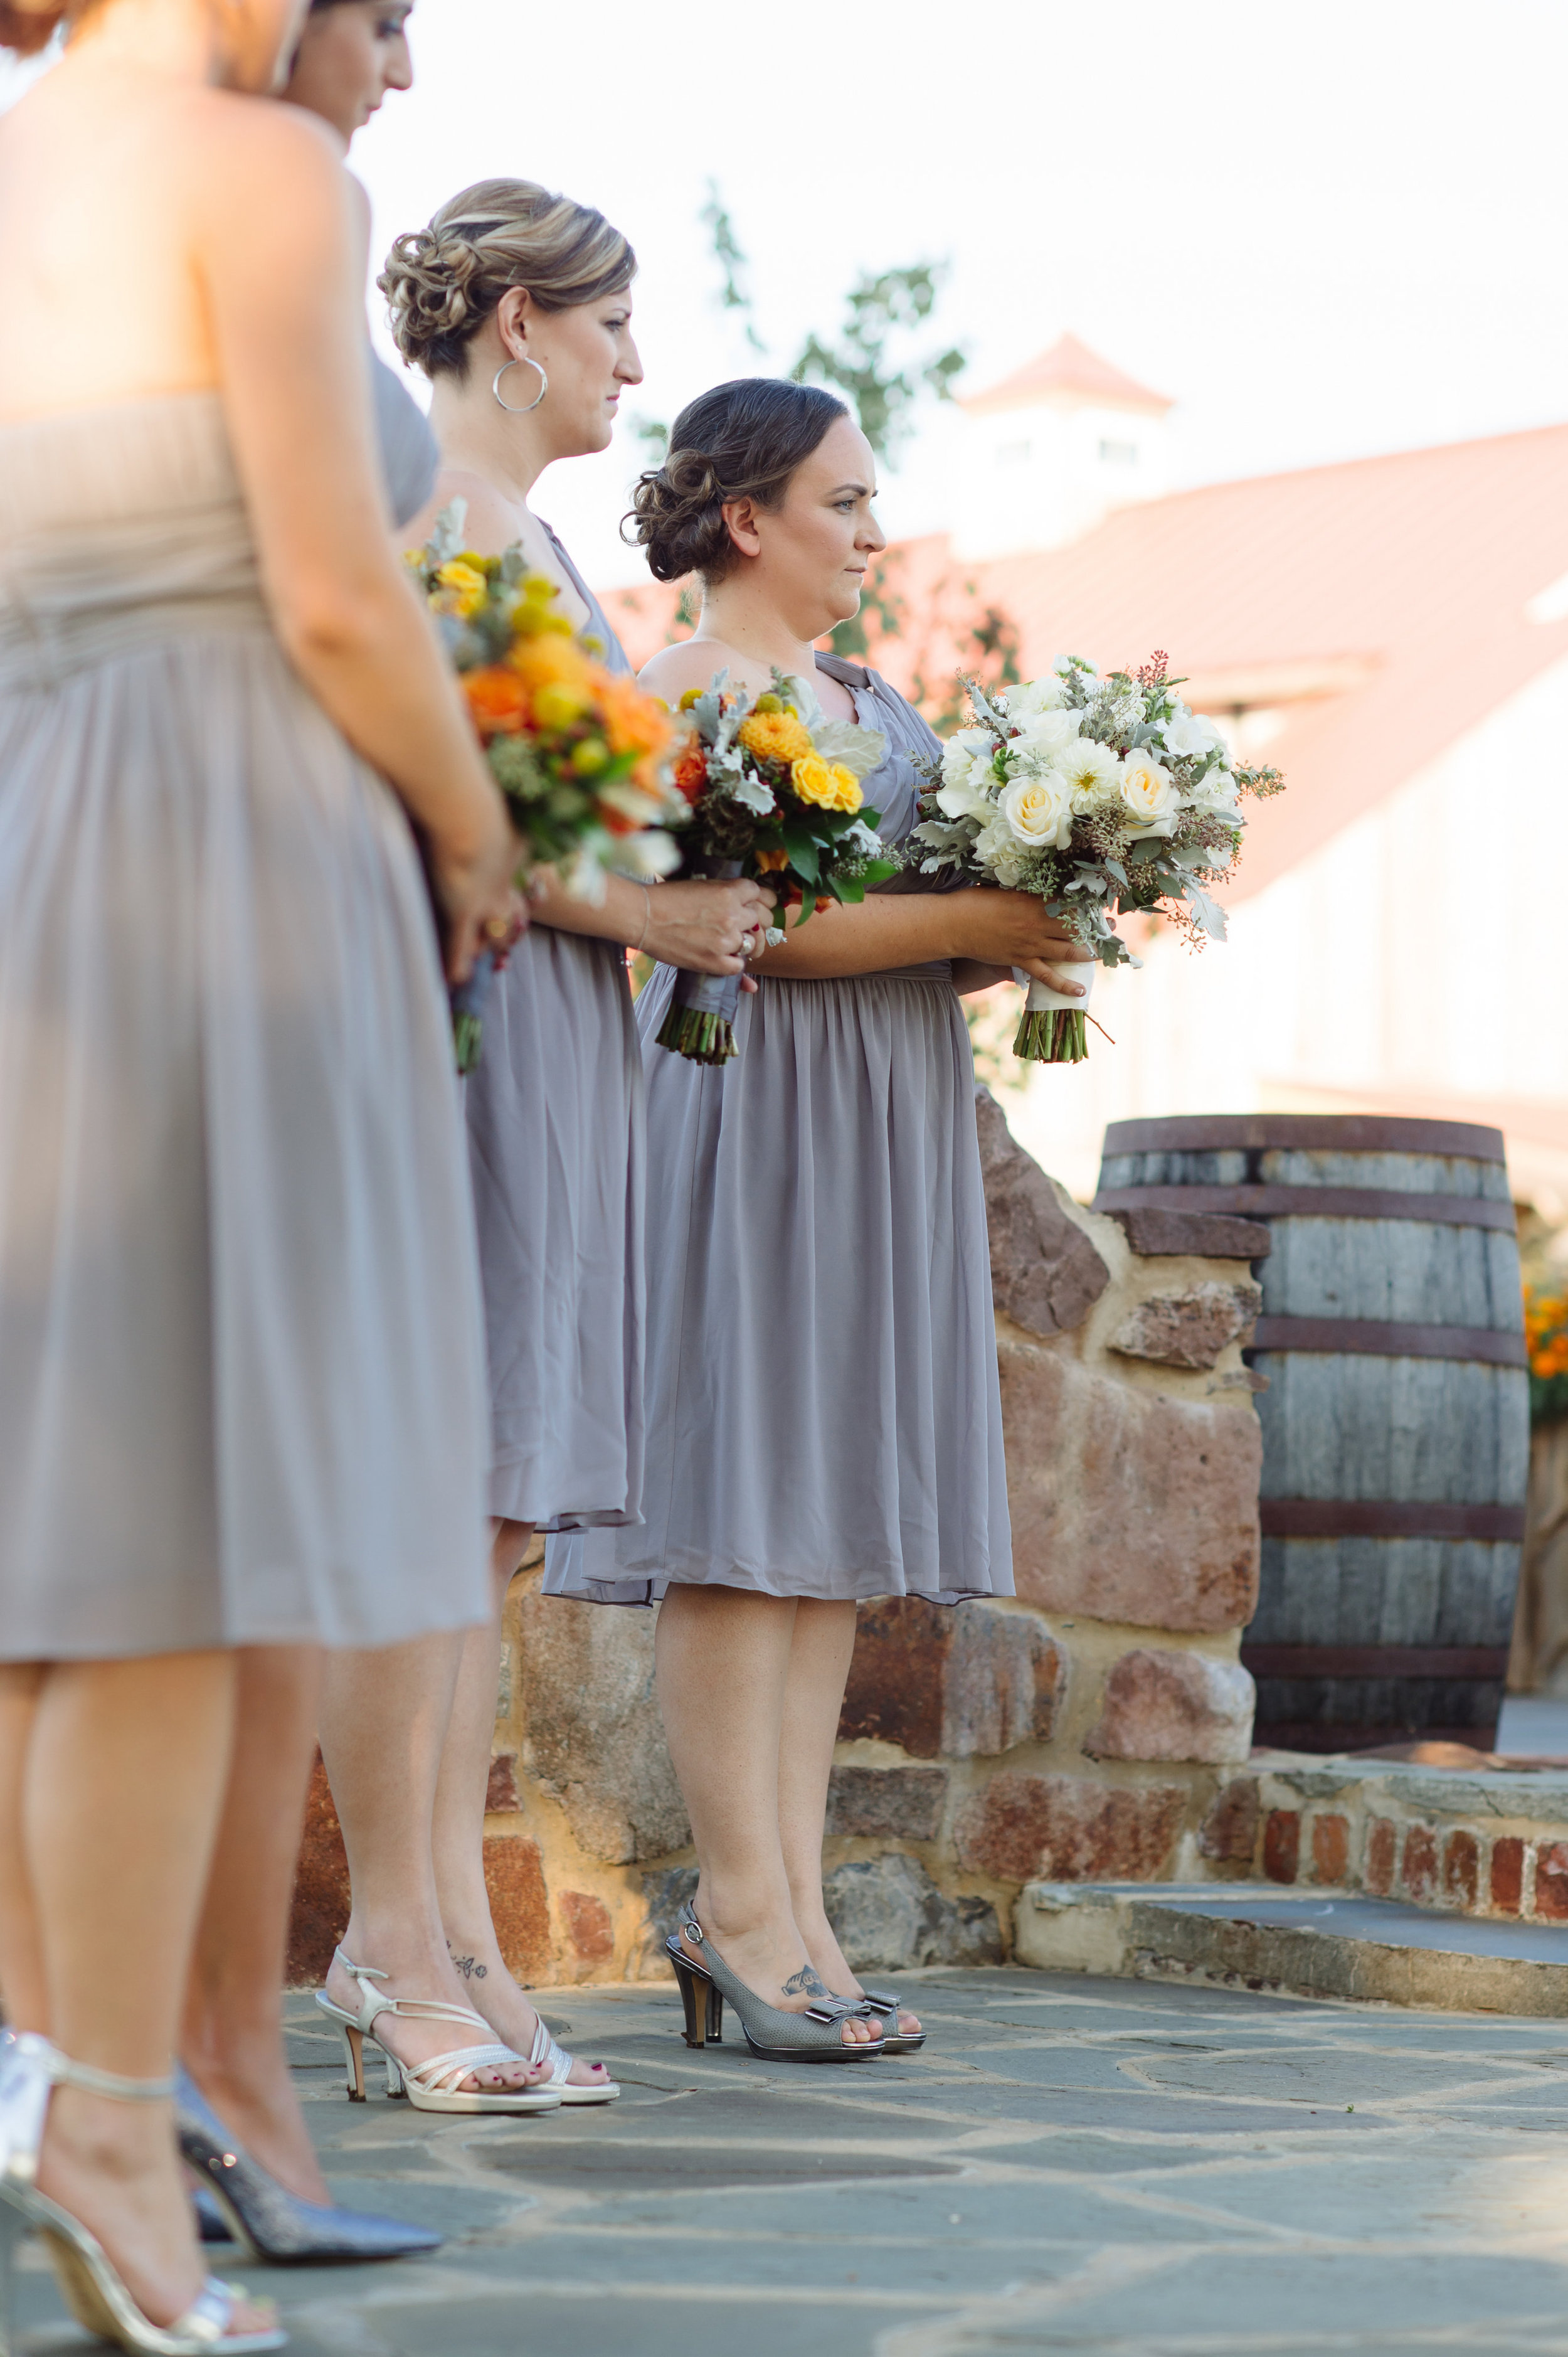 Catherine + Stephen on September 27, 2014   ♥ Marcella Treybig Photography